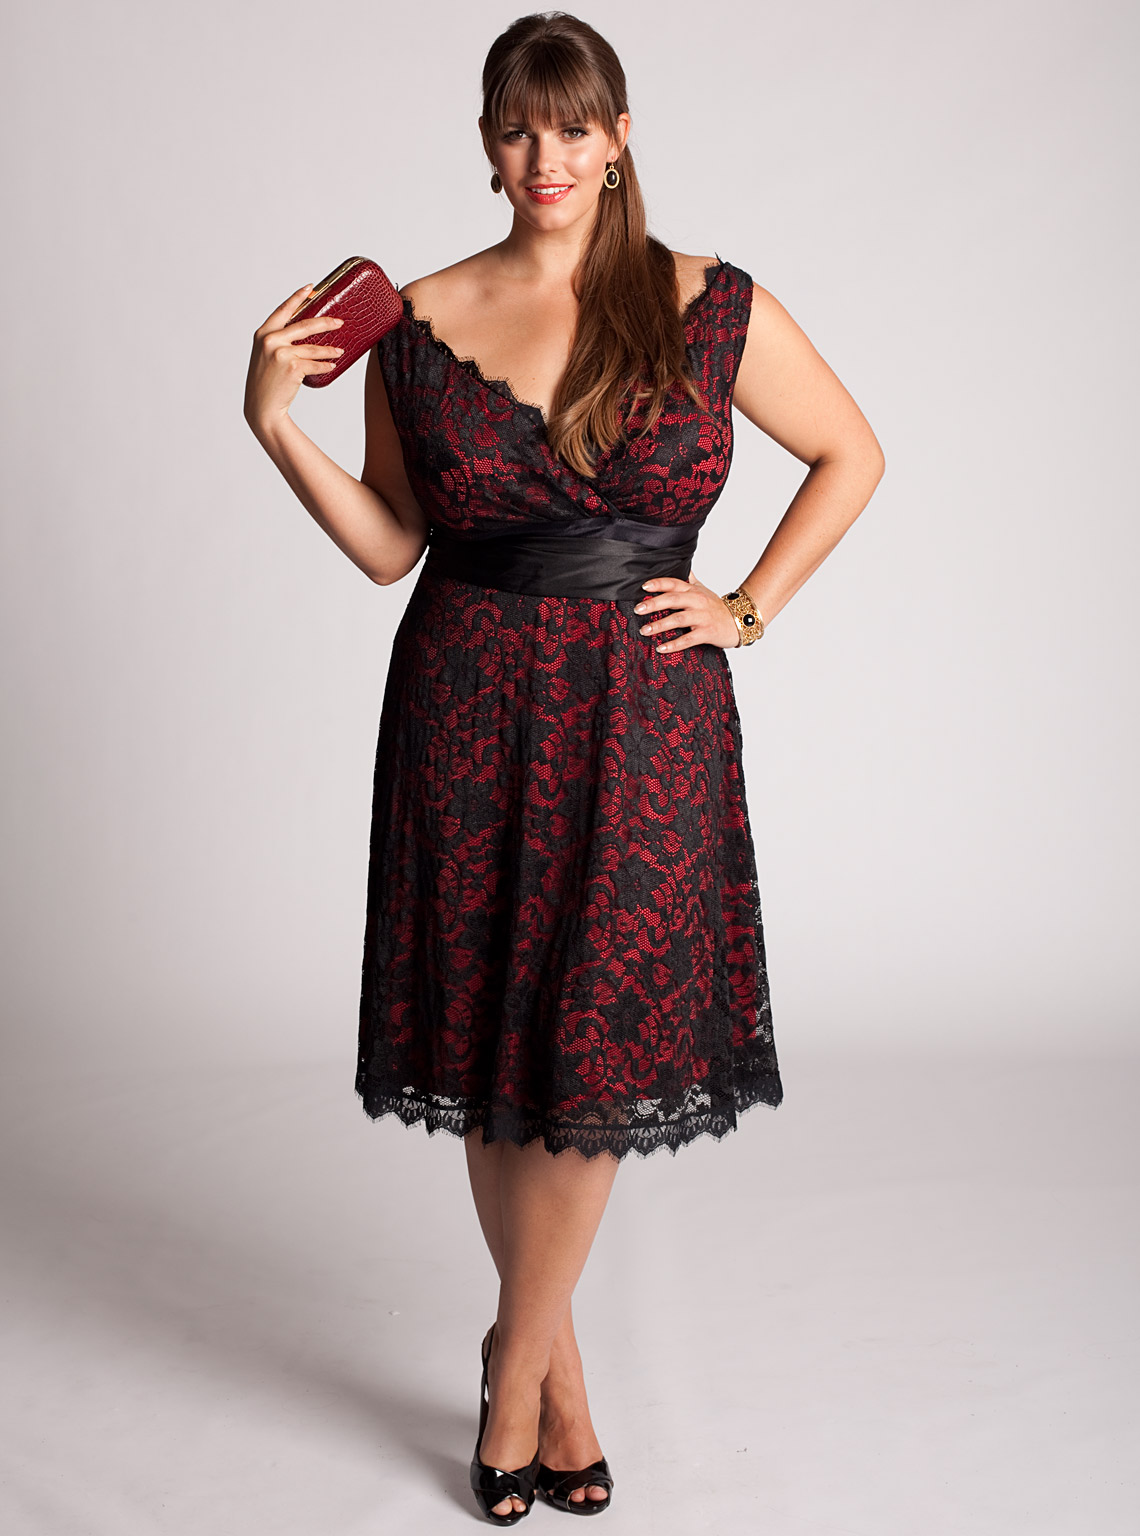 r&okay plus size clothes